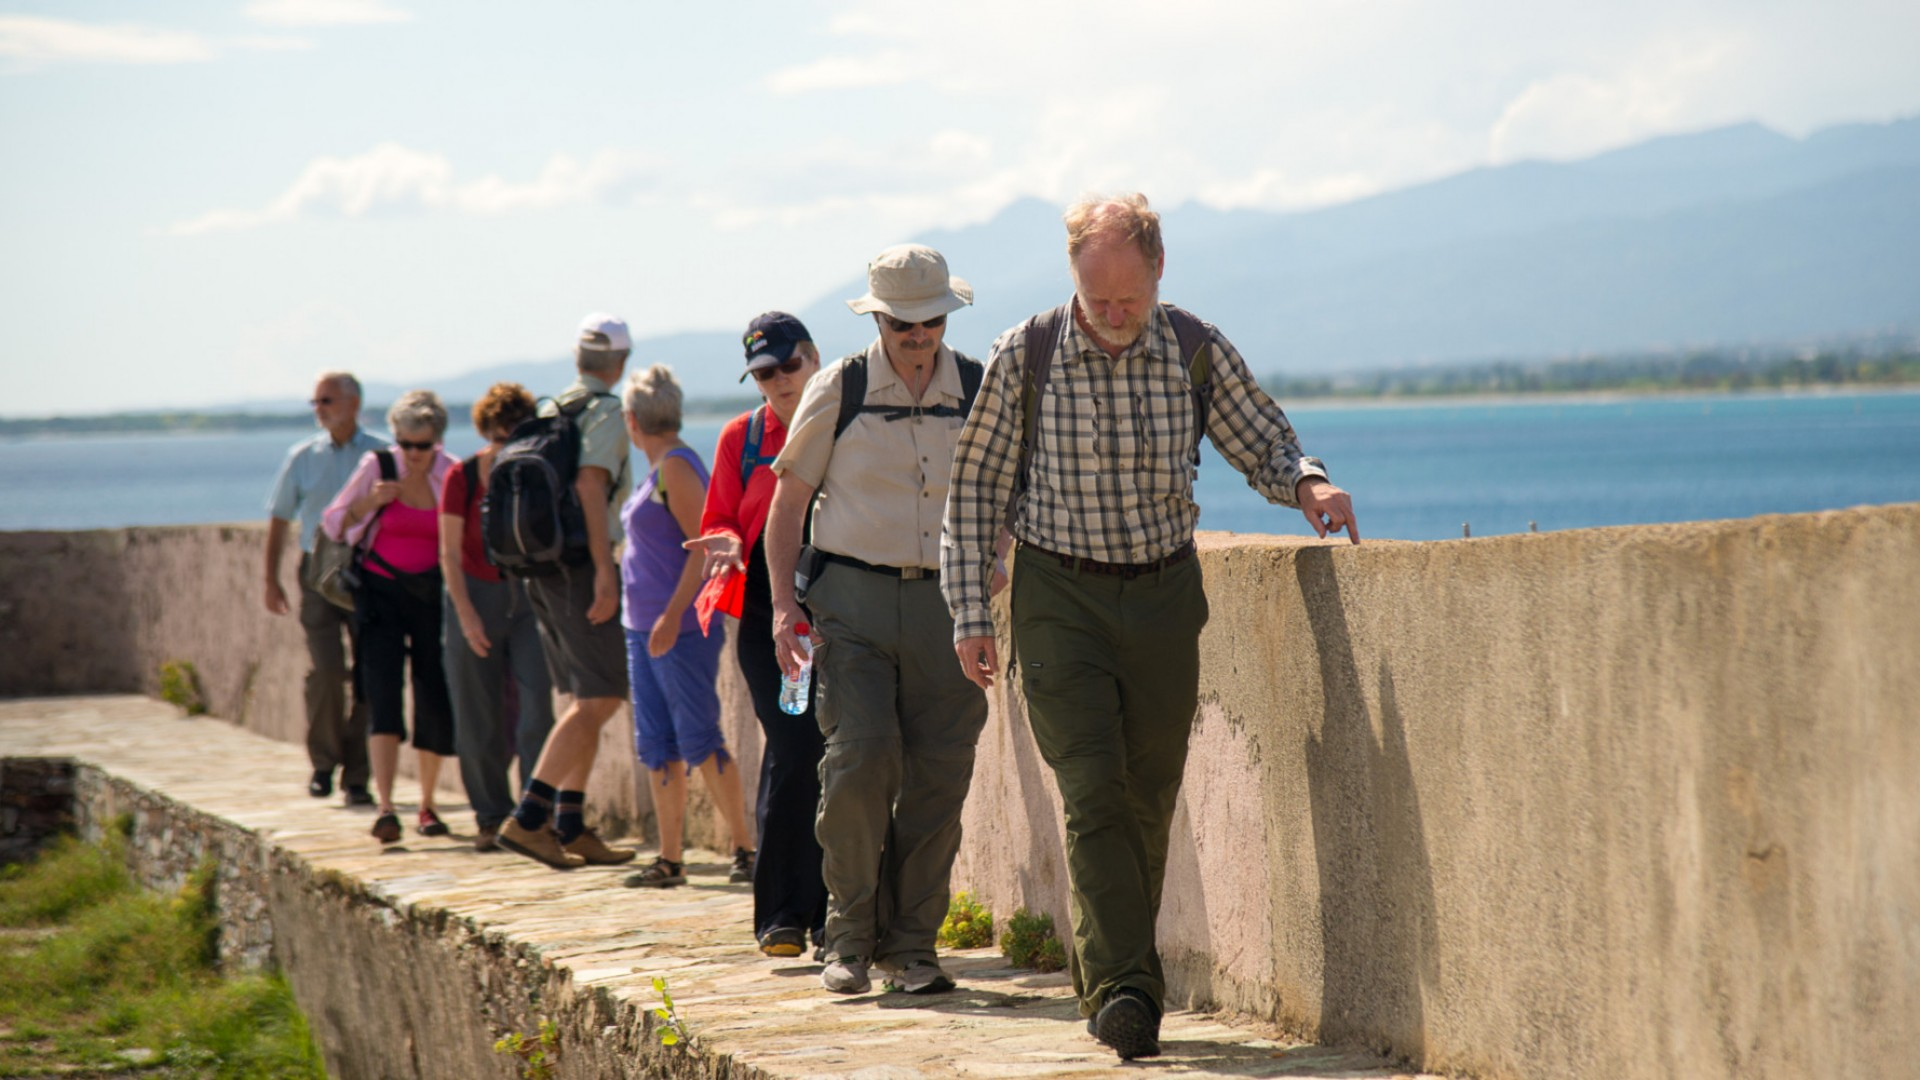 group walking along sidewalk with wall in corsica